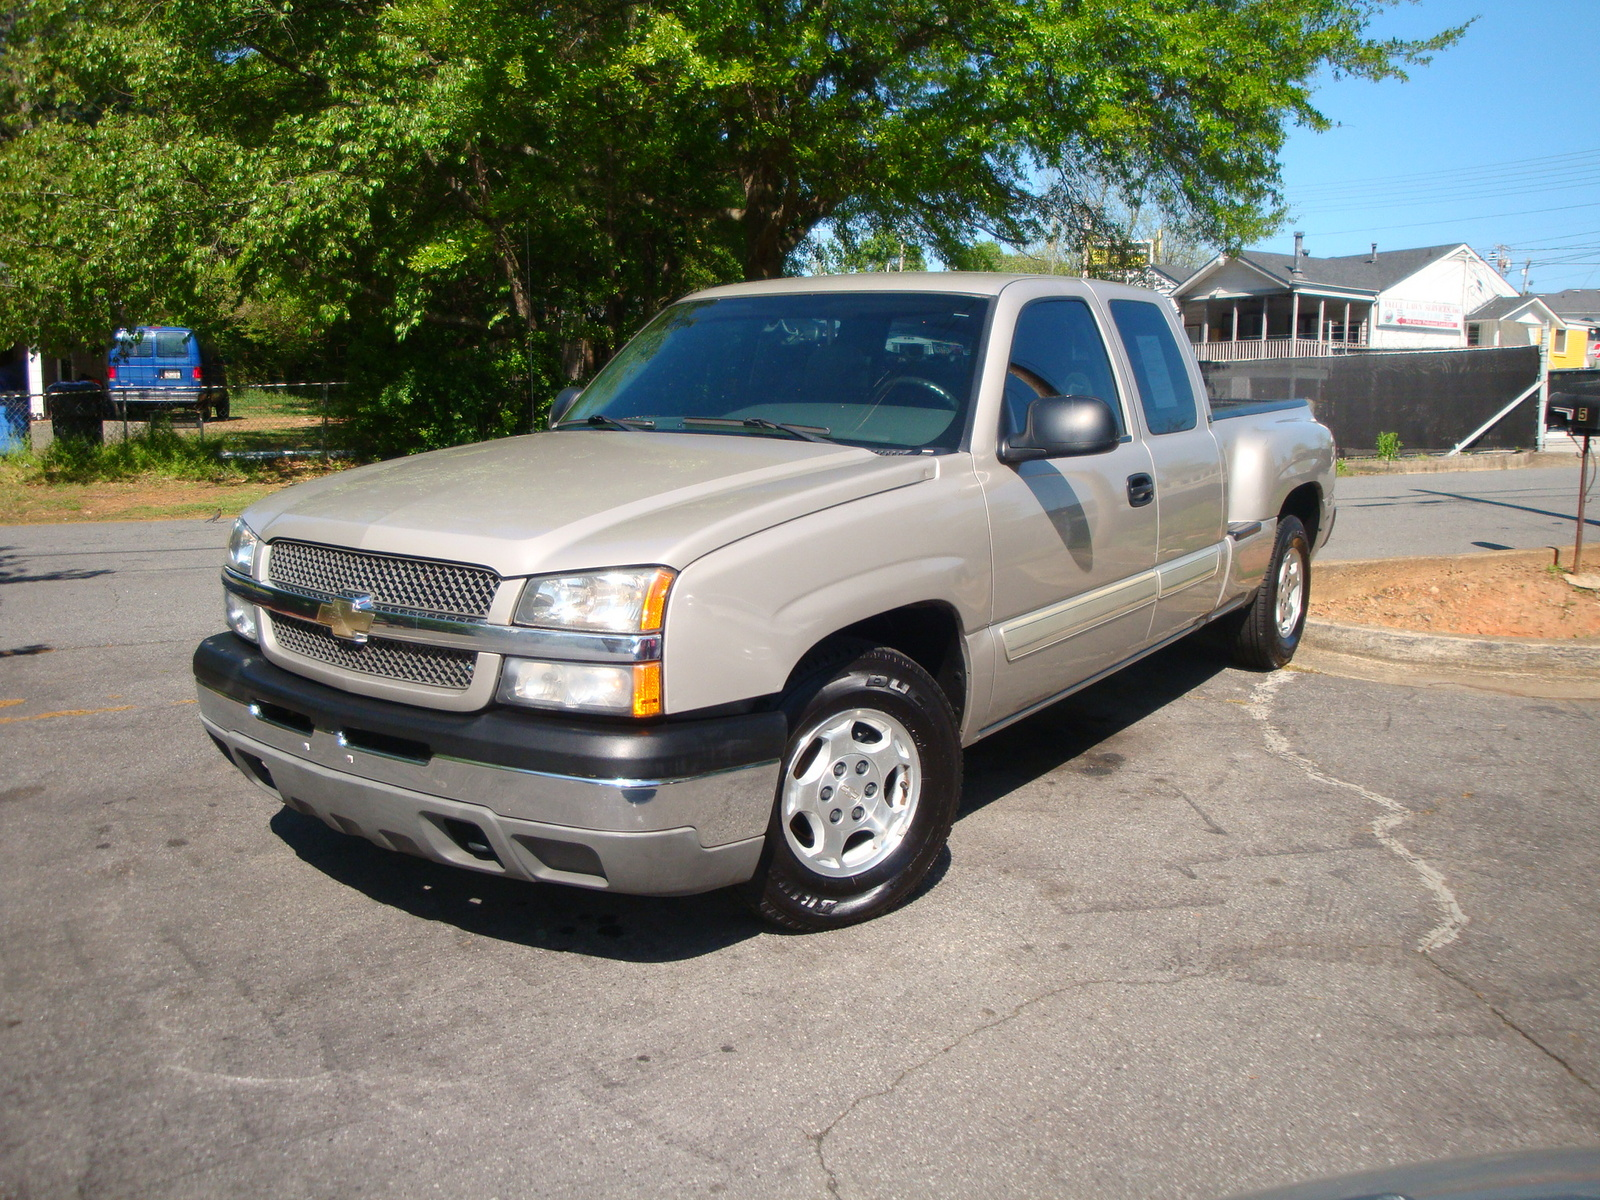 2004 chevrolet silverado 1500 pictures cargurus. Black Bedroom Furniture Sets. Home Design Ideas